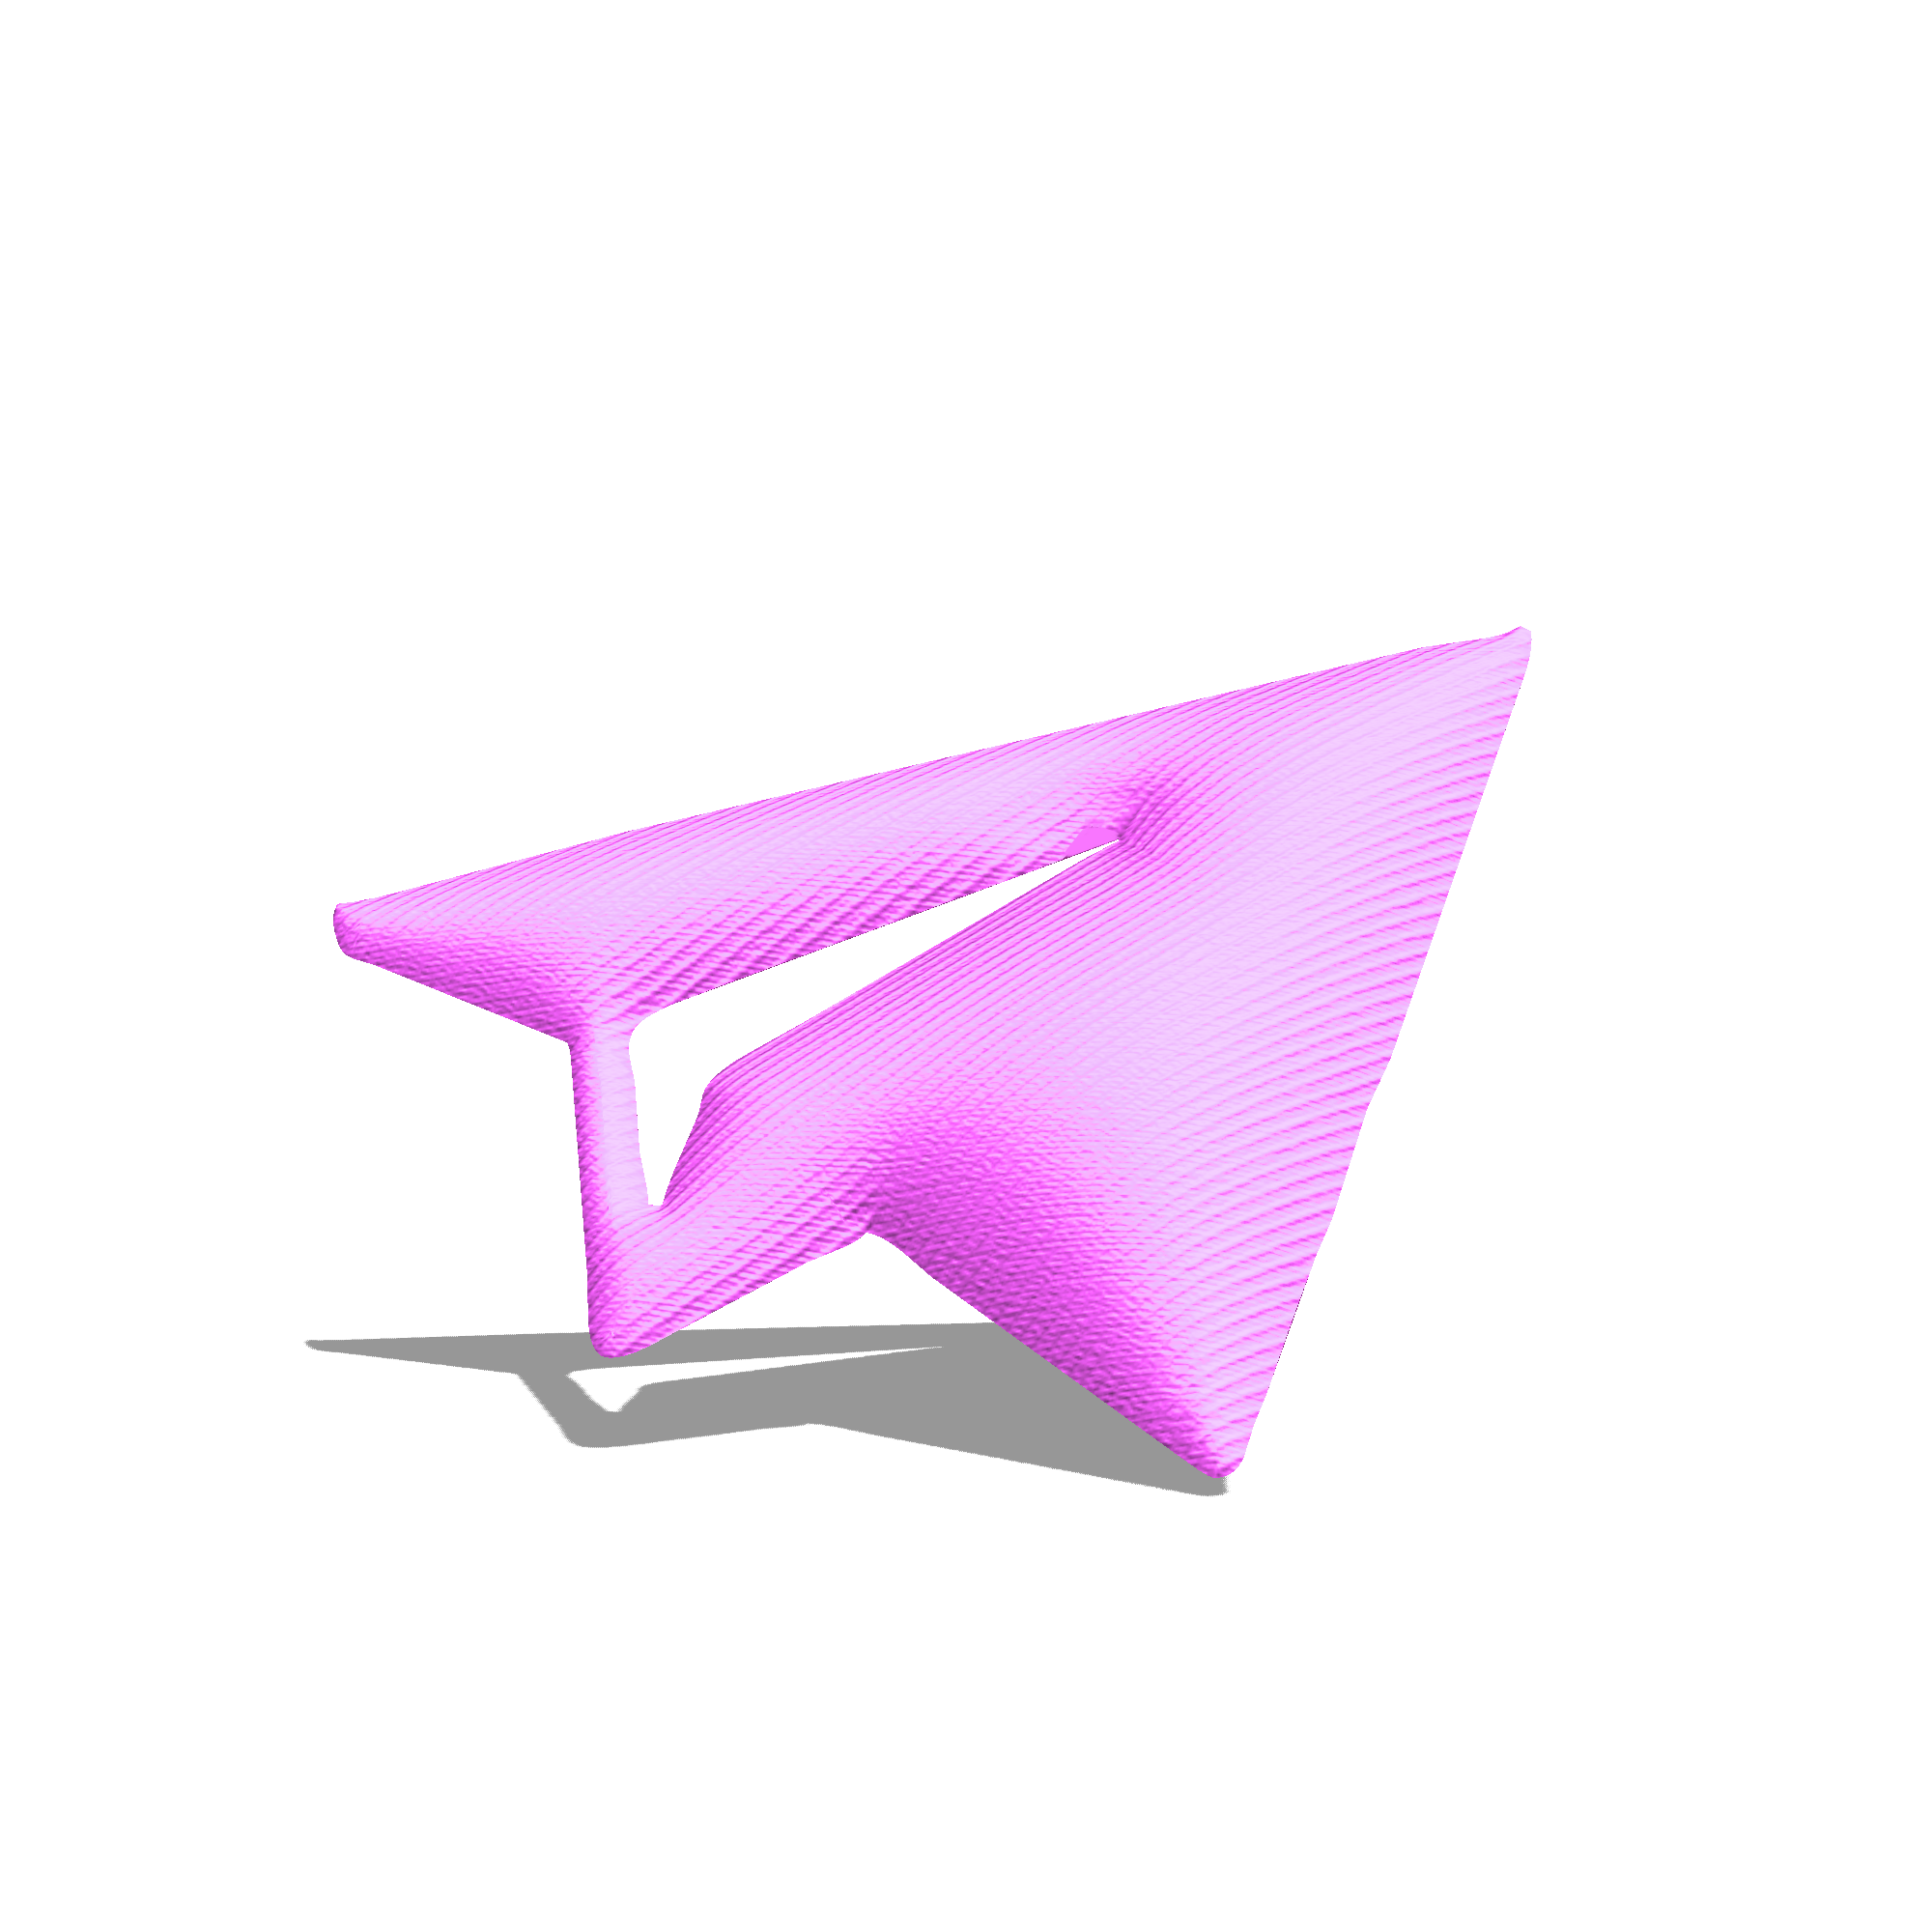 https://interior.kg/wp-content/uploads/2021/01/—Pngtree—telephone-3d-pink-icon_5523783.png